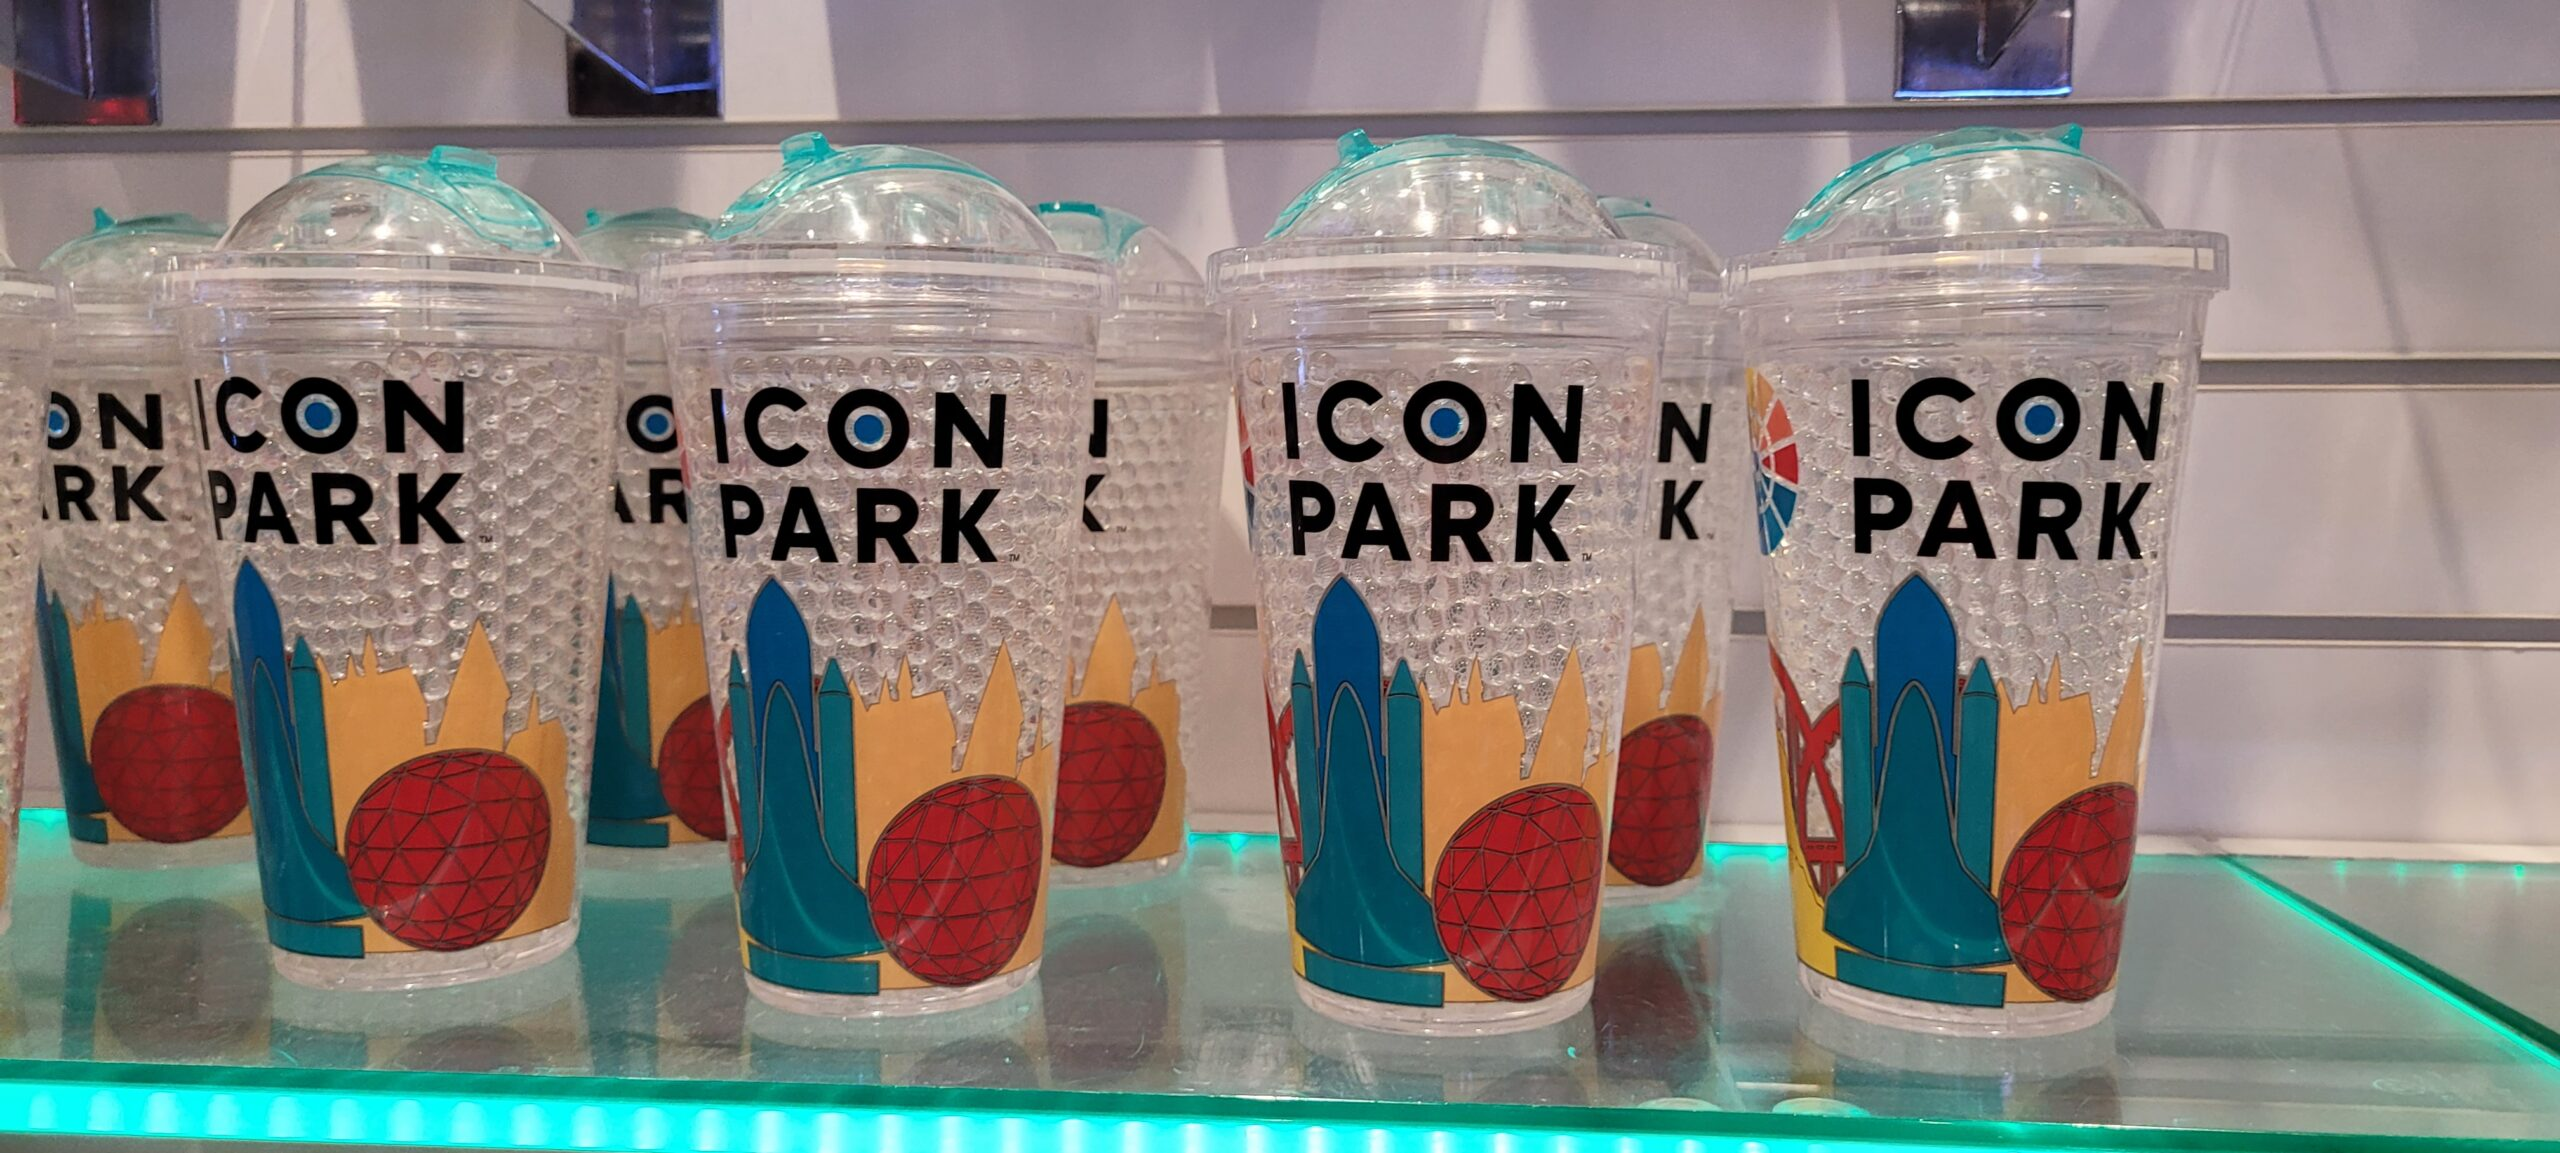 Have a family fun day at ICON Park in Orlando 29